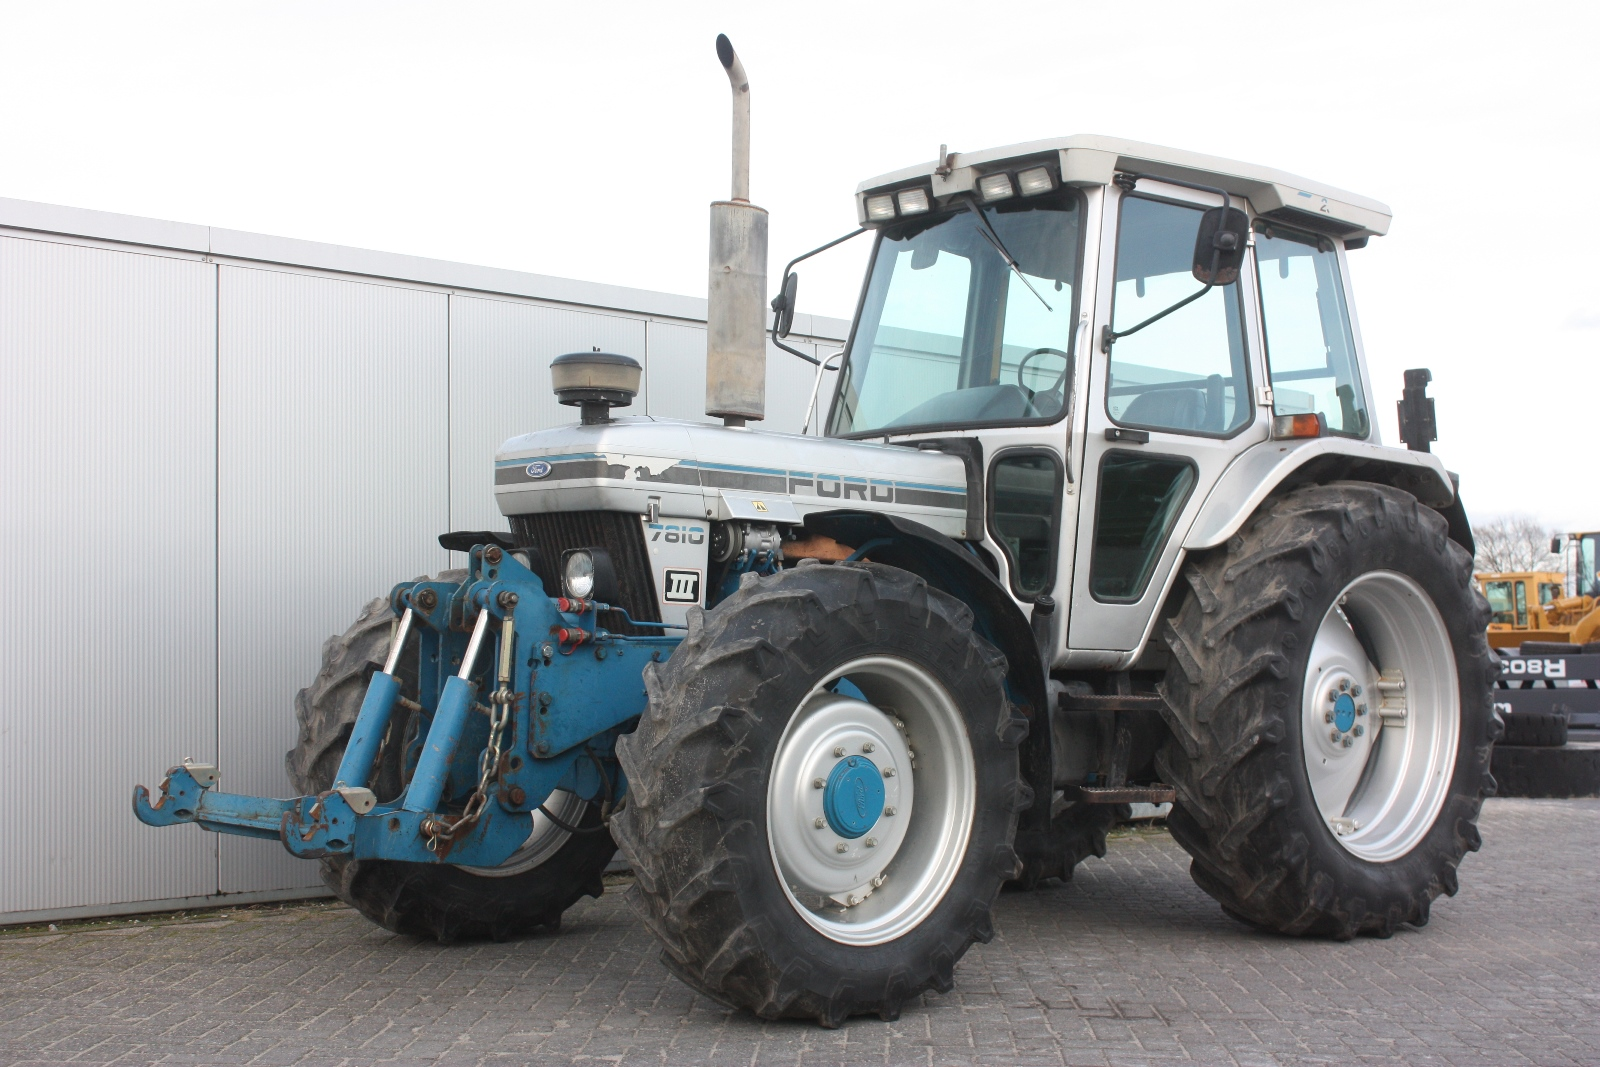 Ford 7810 Tractor : Ford wd agricultural tractor van dijk heavy